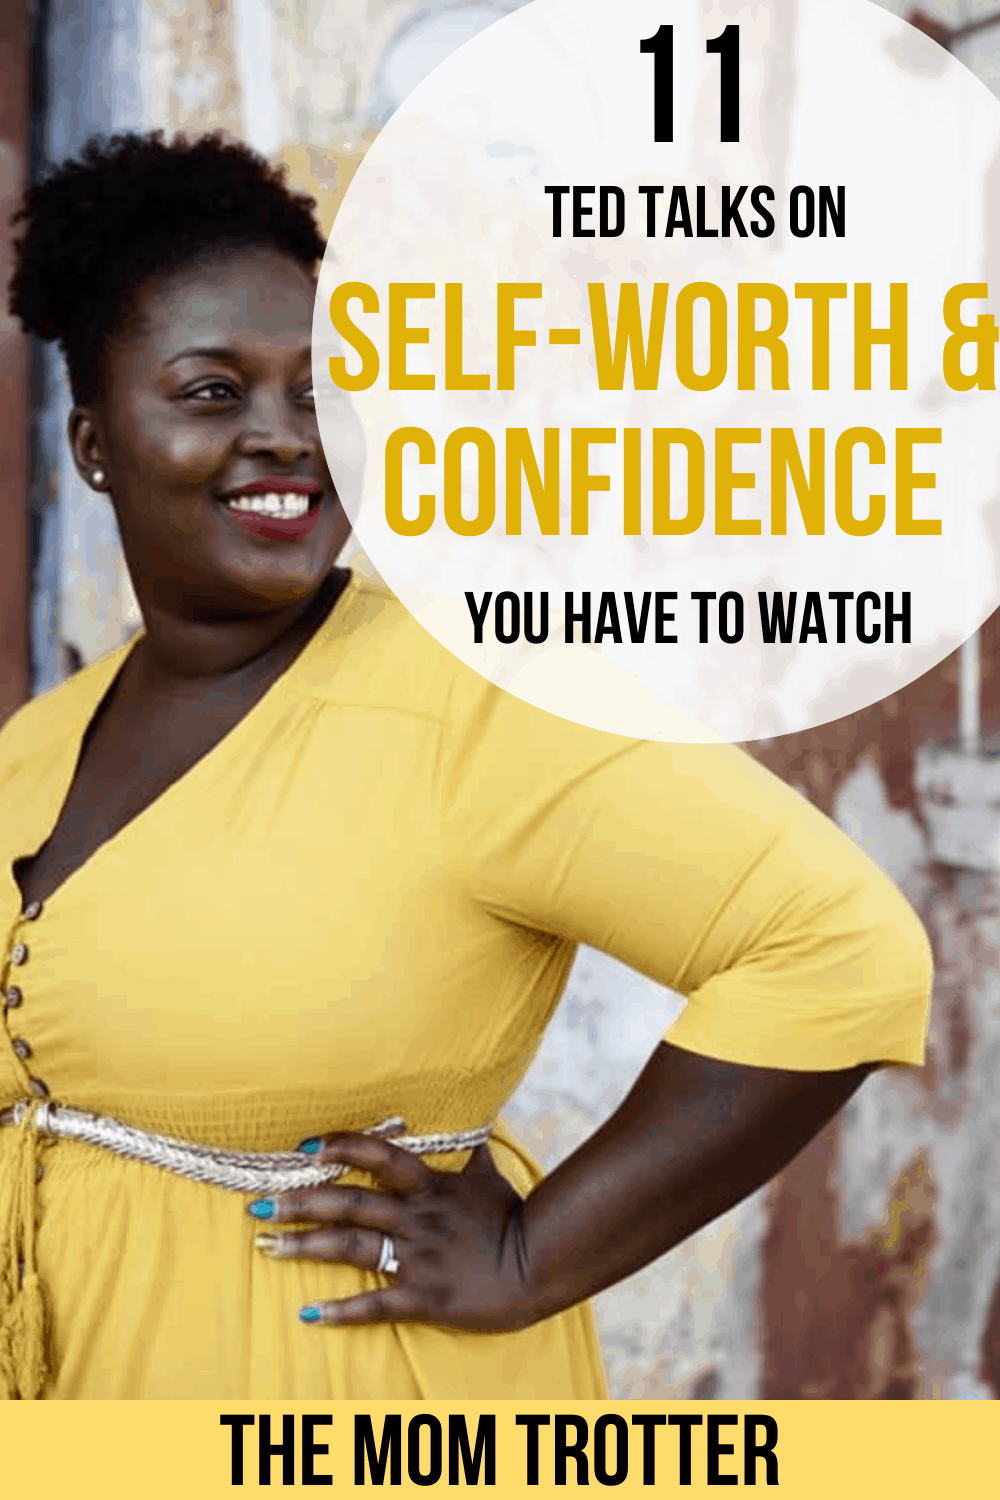 11 Ted Talks About Self-Worth and Confidence